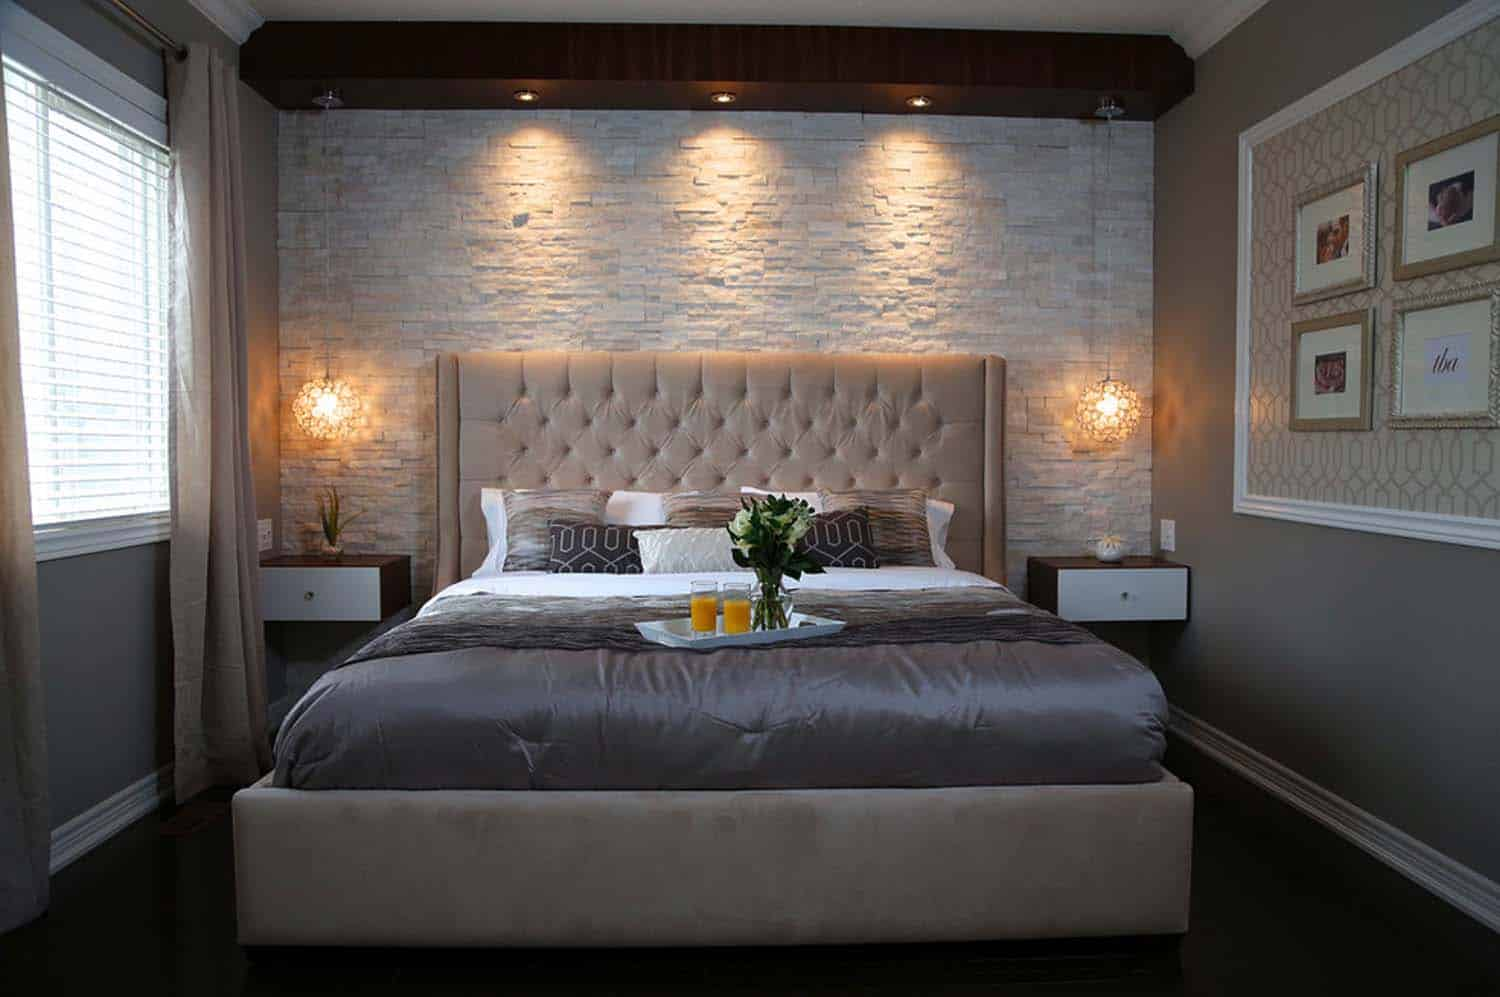 Bedroom Decorating Ideas Ireland